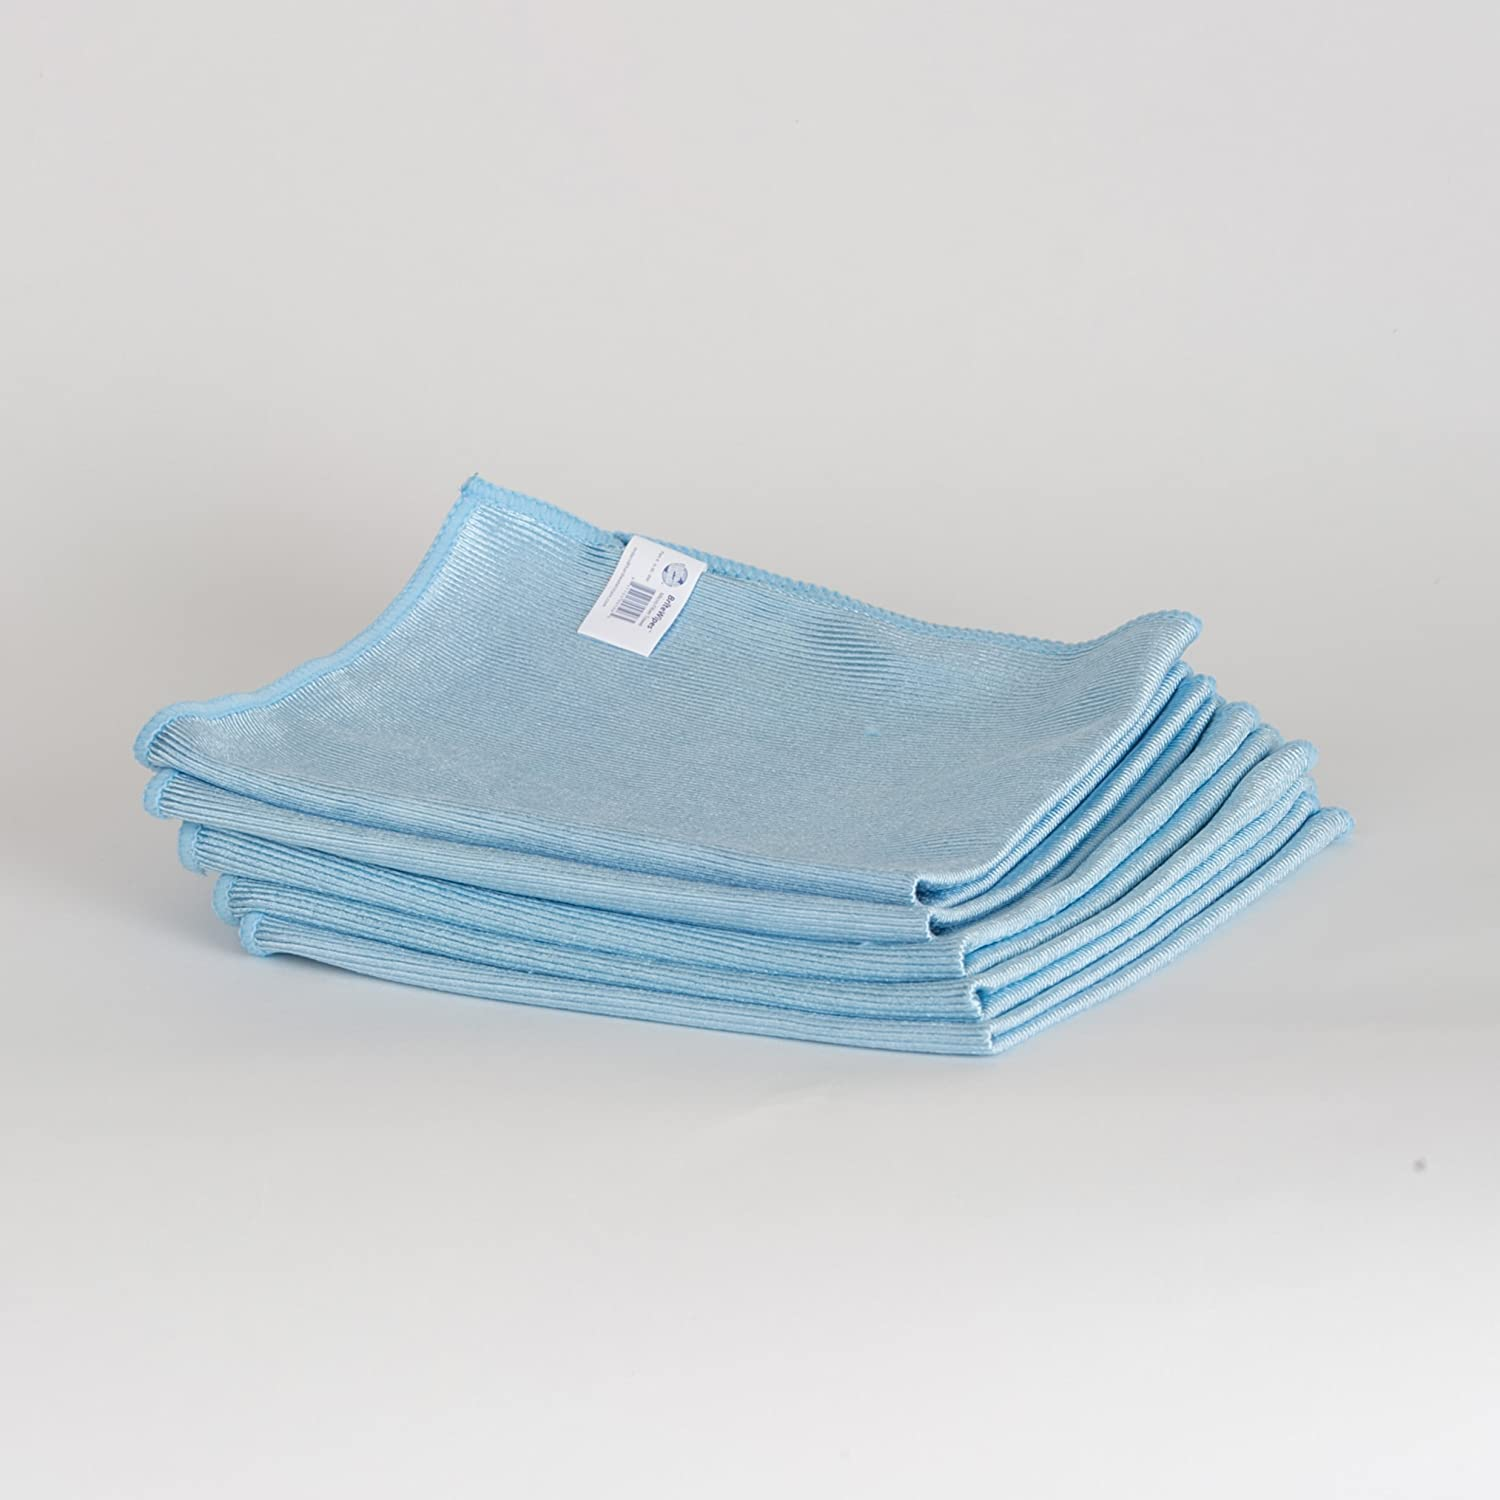 Microbrite Set of 3 Tea Towels Grey and Blue Microfibre Absorbent OR Hankie